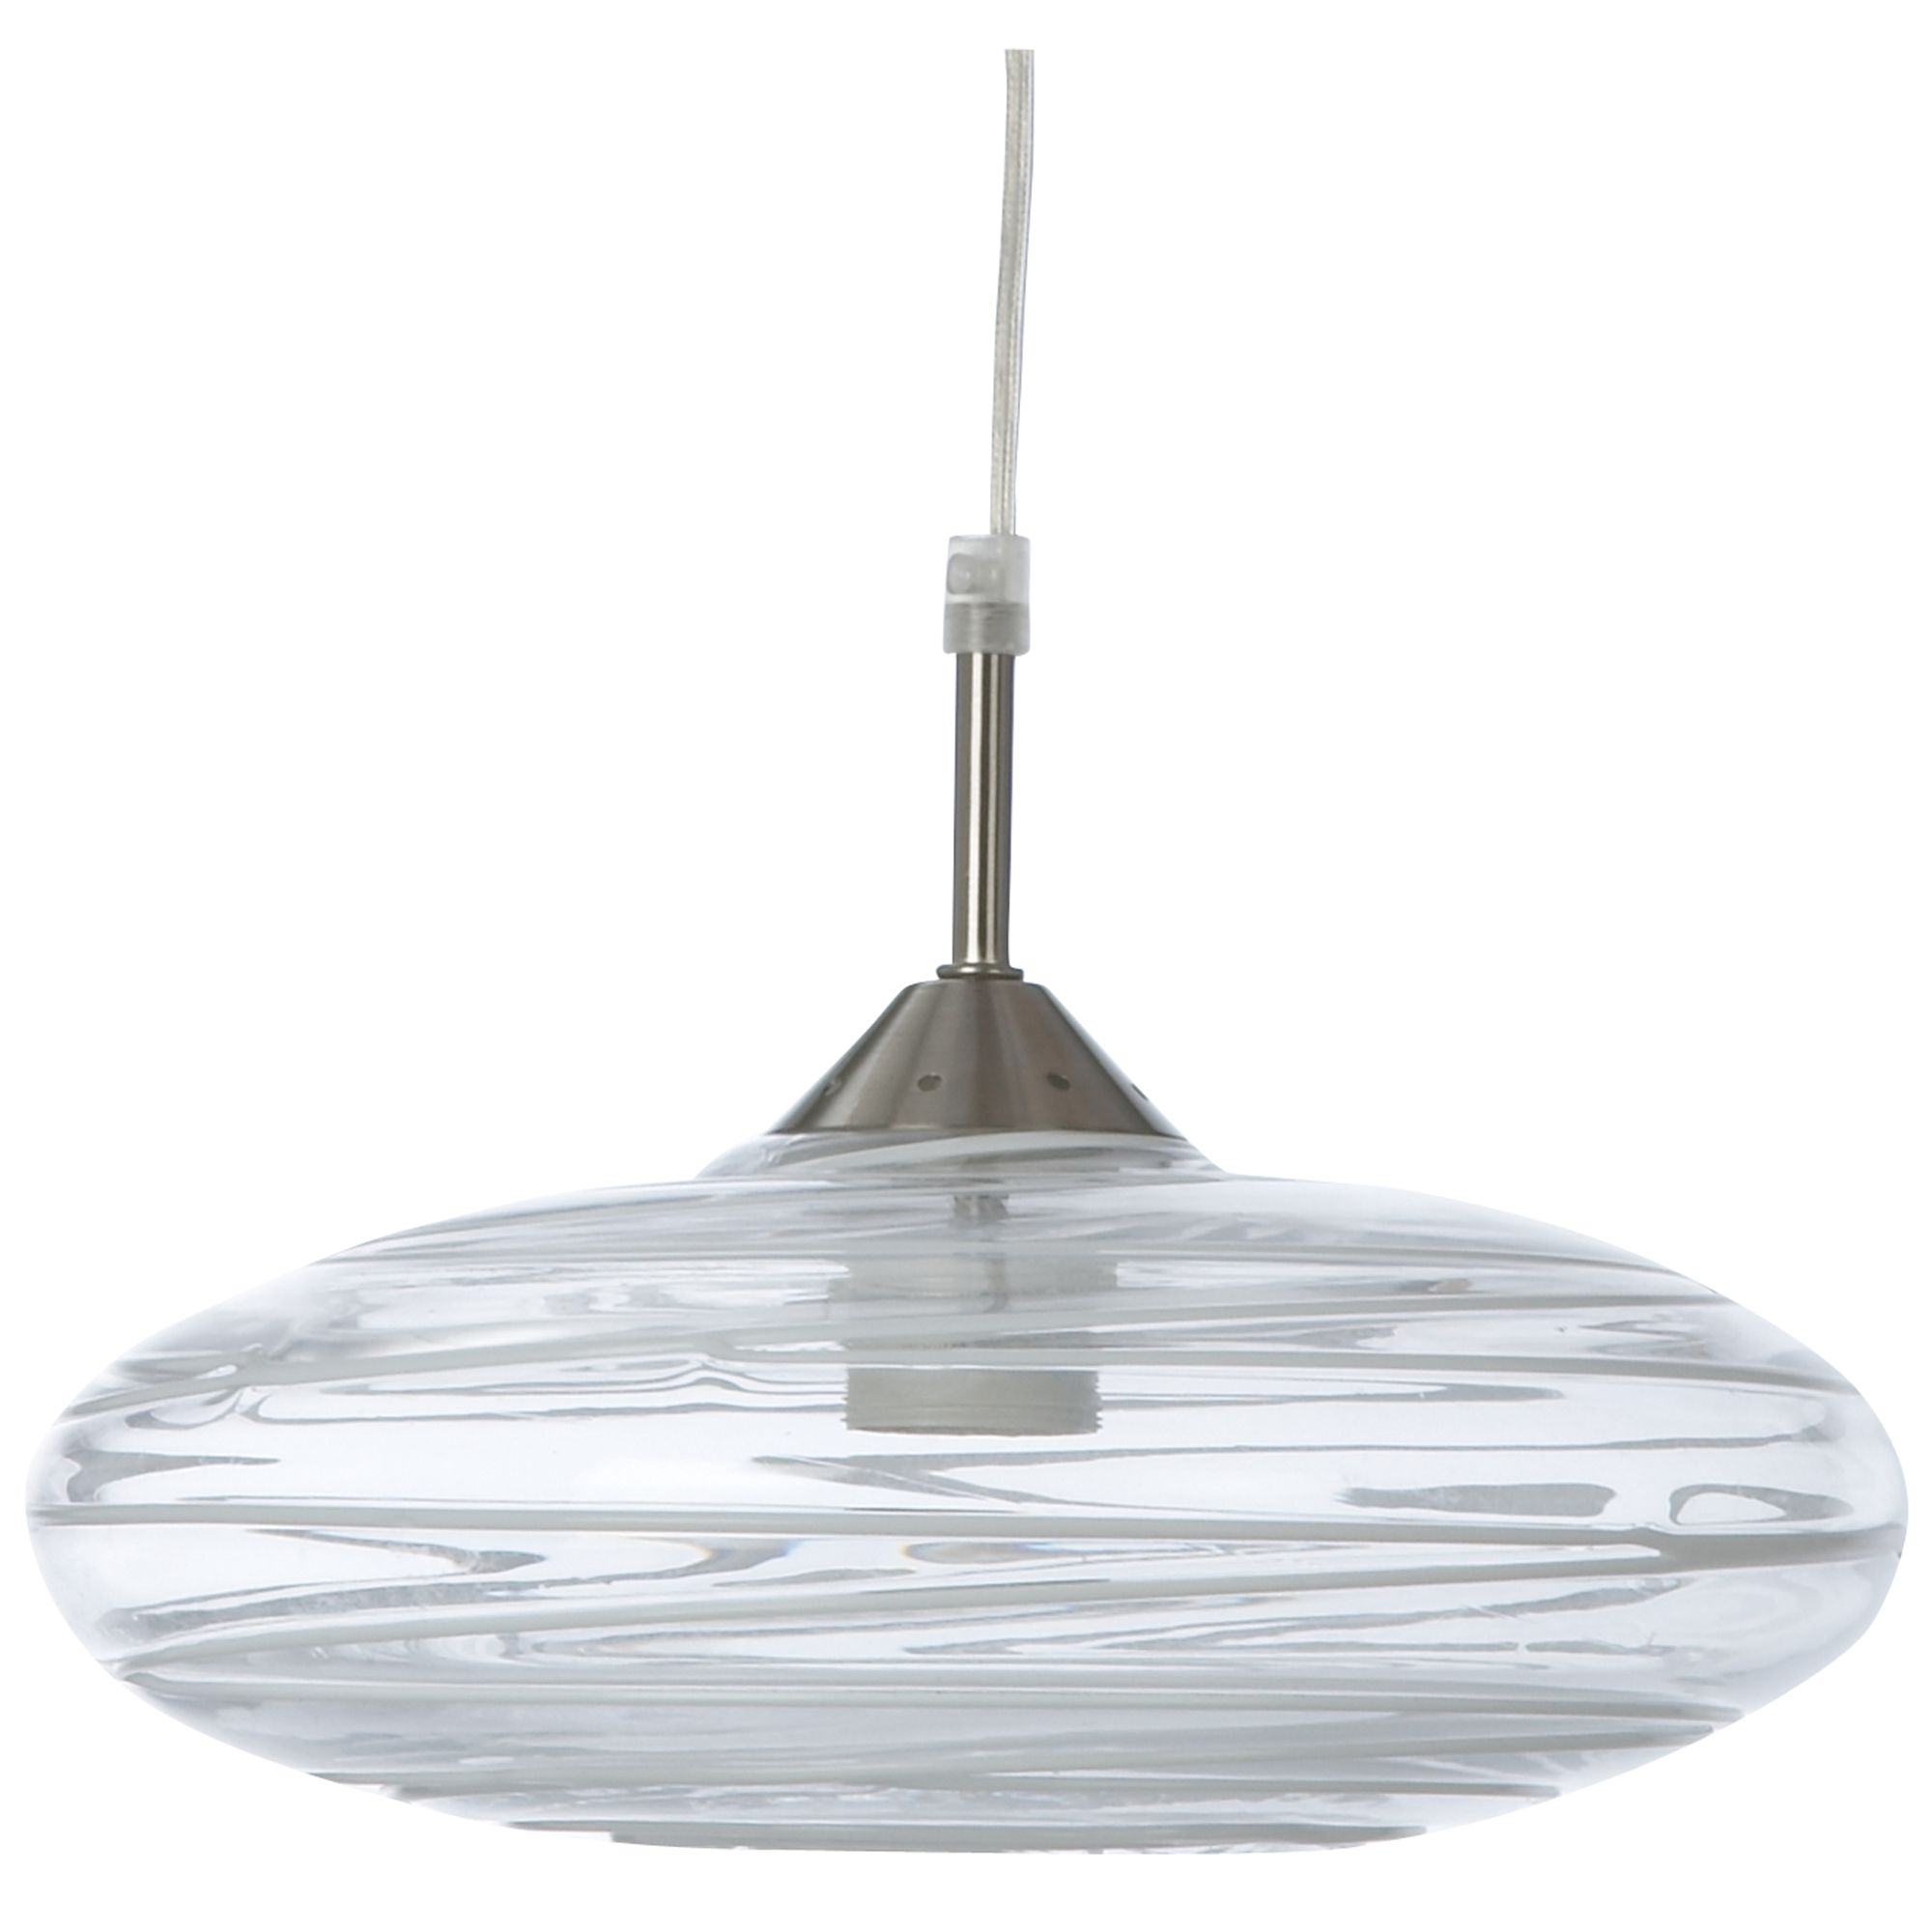 Ceiling Lights House Of Fraser : House of fraser nicole ceiling pendant review compare